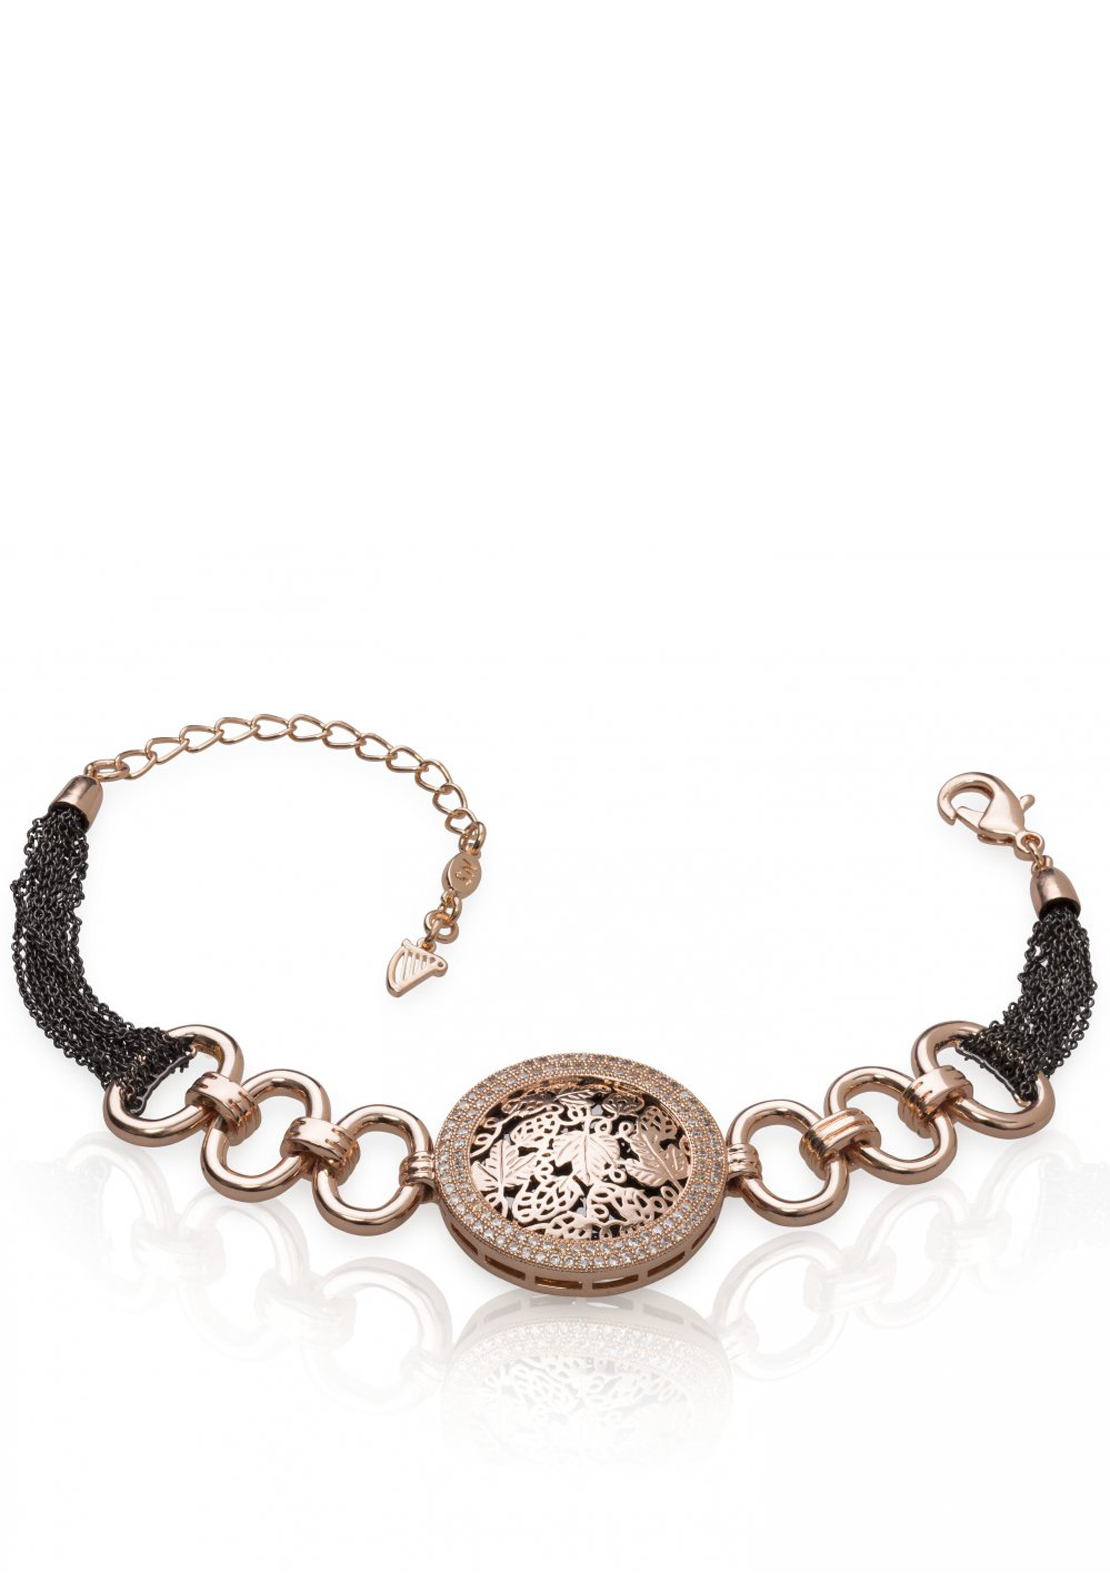 Guinness Newbridge Silverware Rose Gold Plated Bracelet, Rose Gold